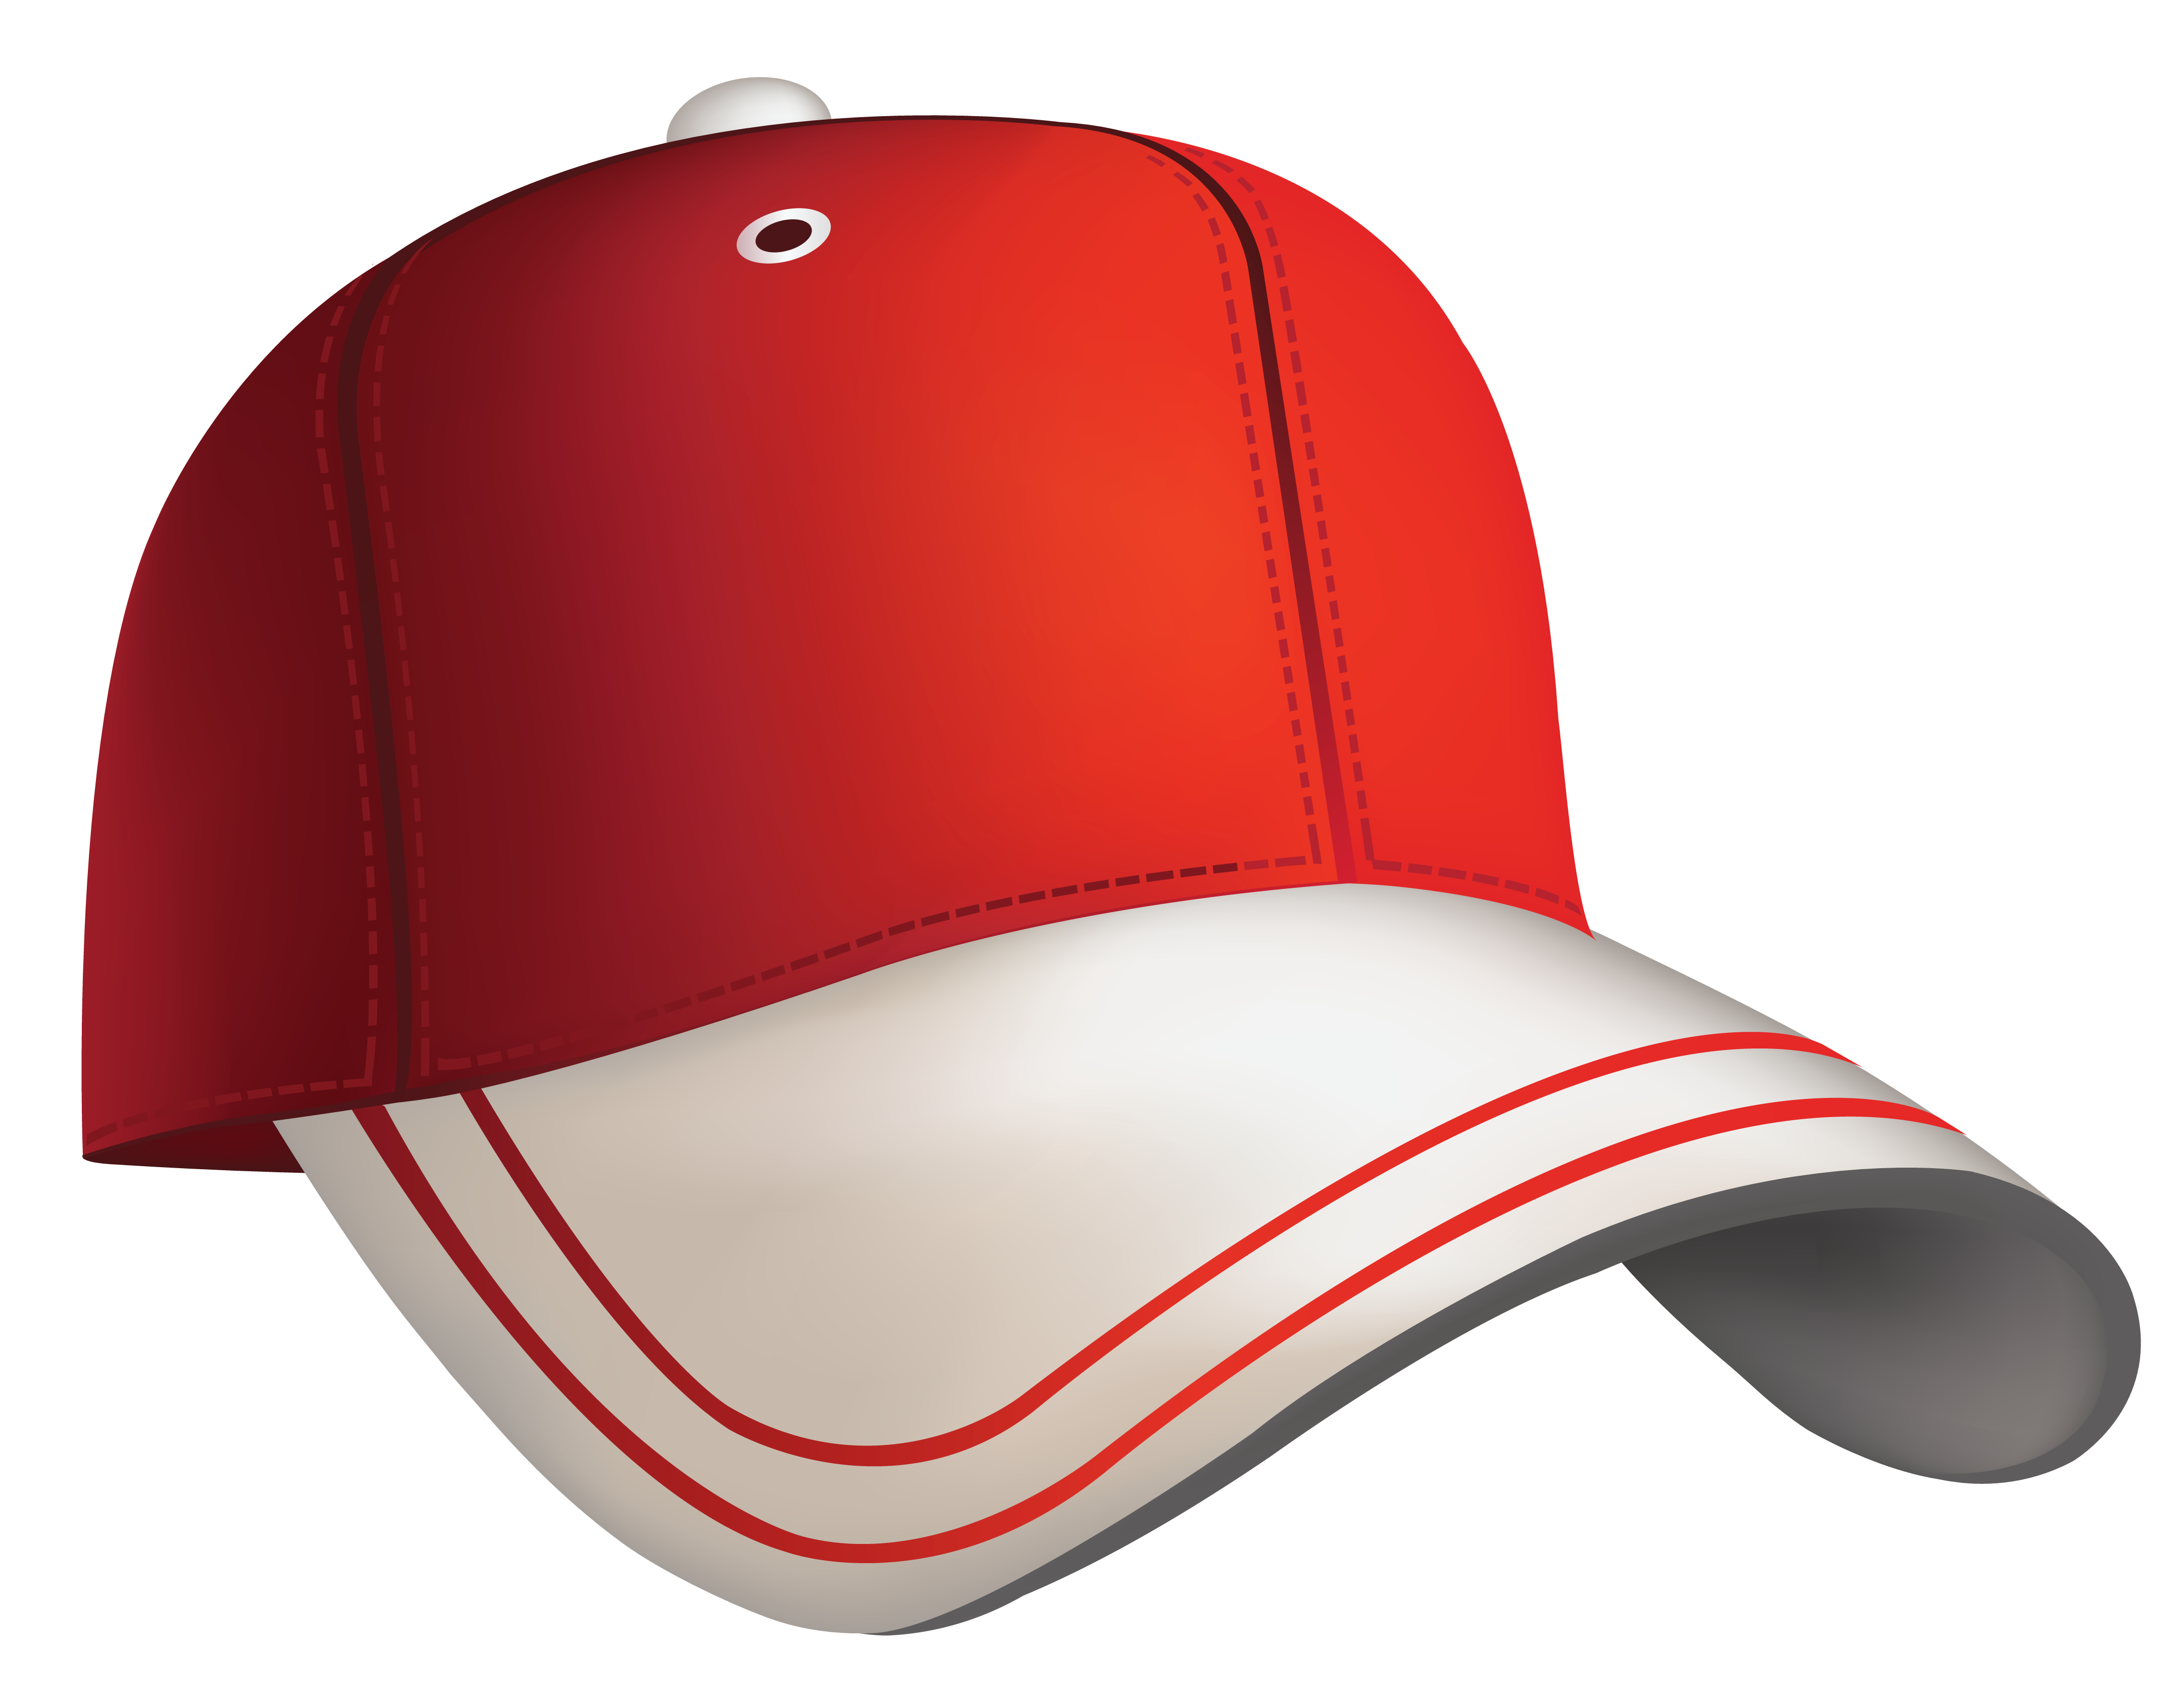 baseball hat clipart. Download Png Image-baseball hat clipart. Download Png Image Baseball Cap Png Image-7